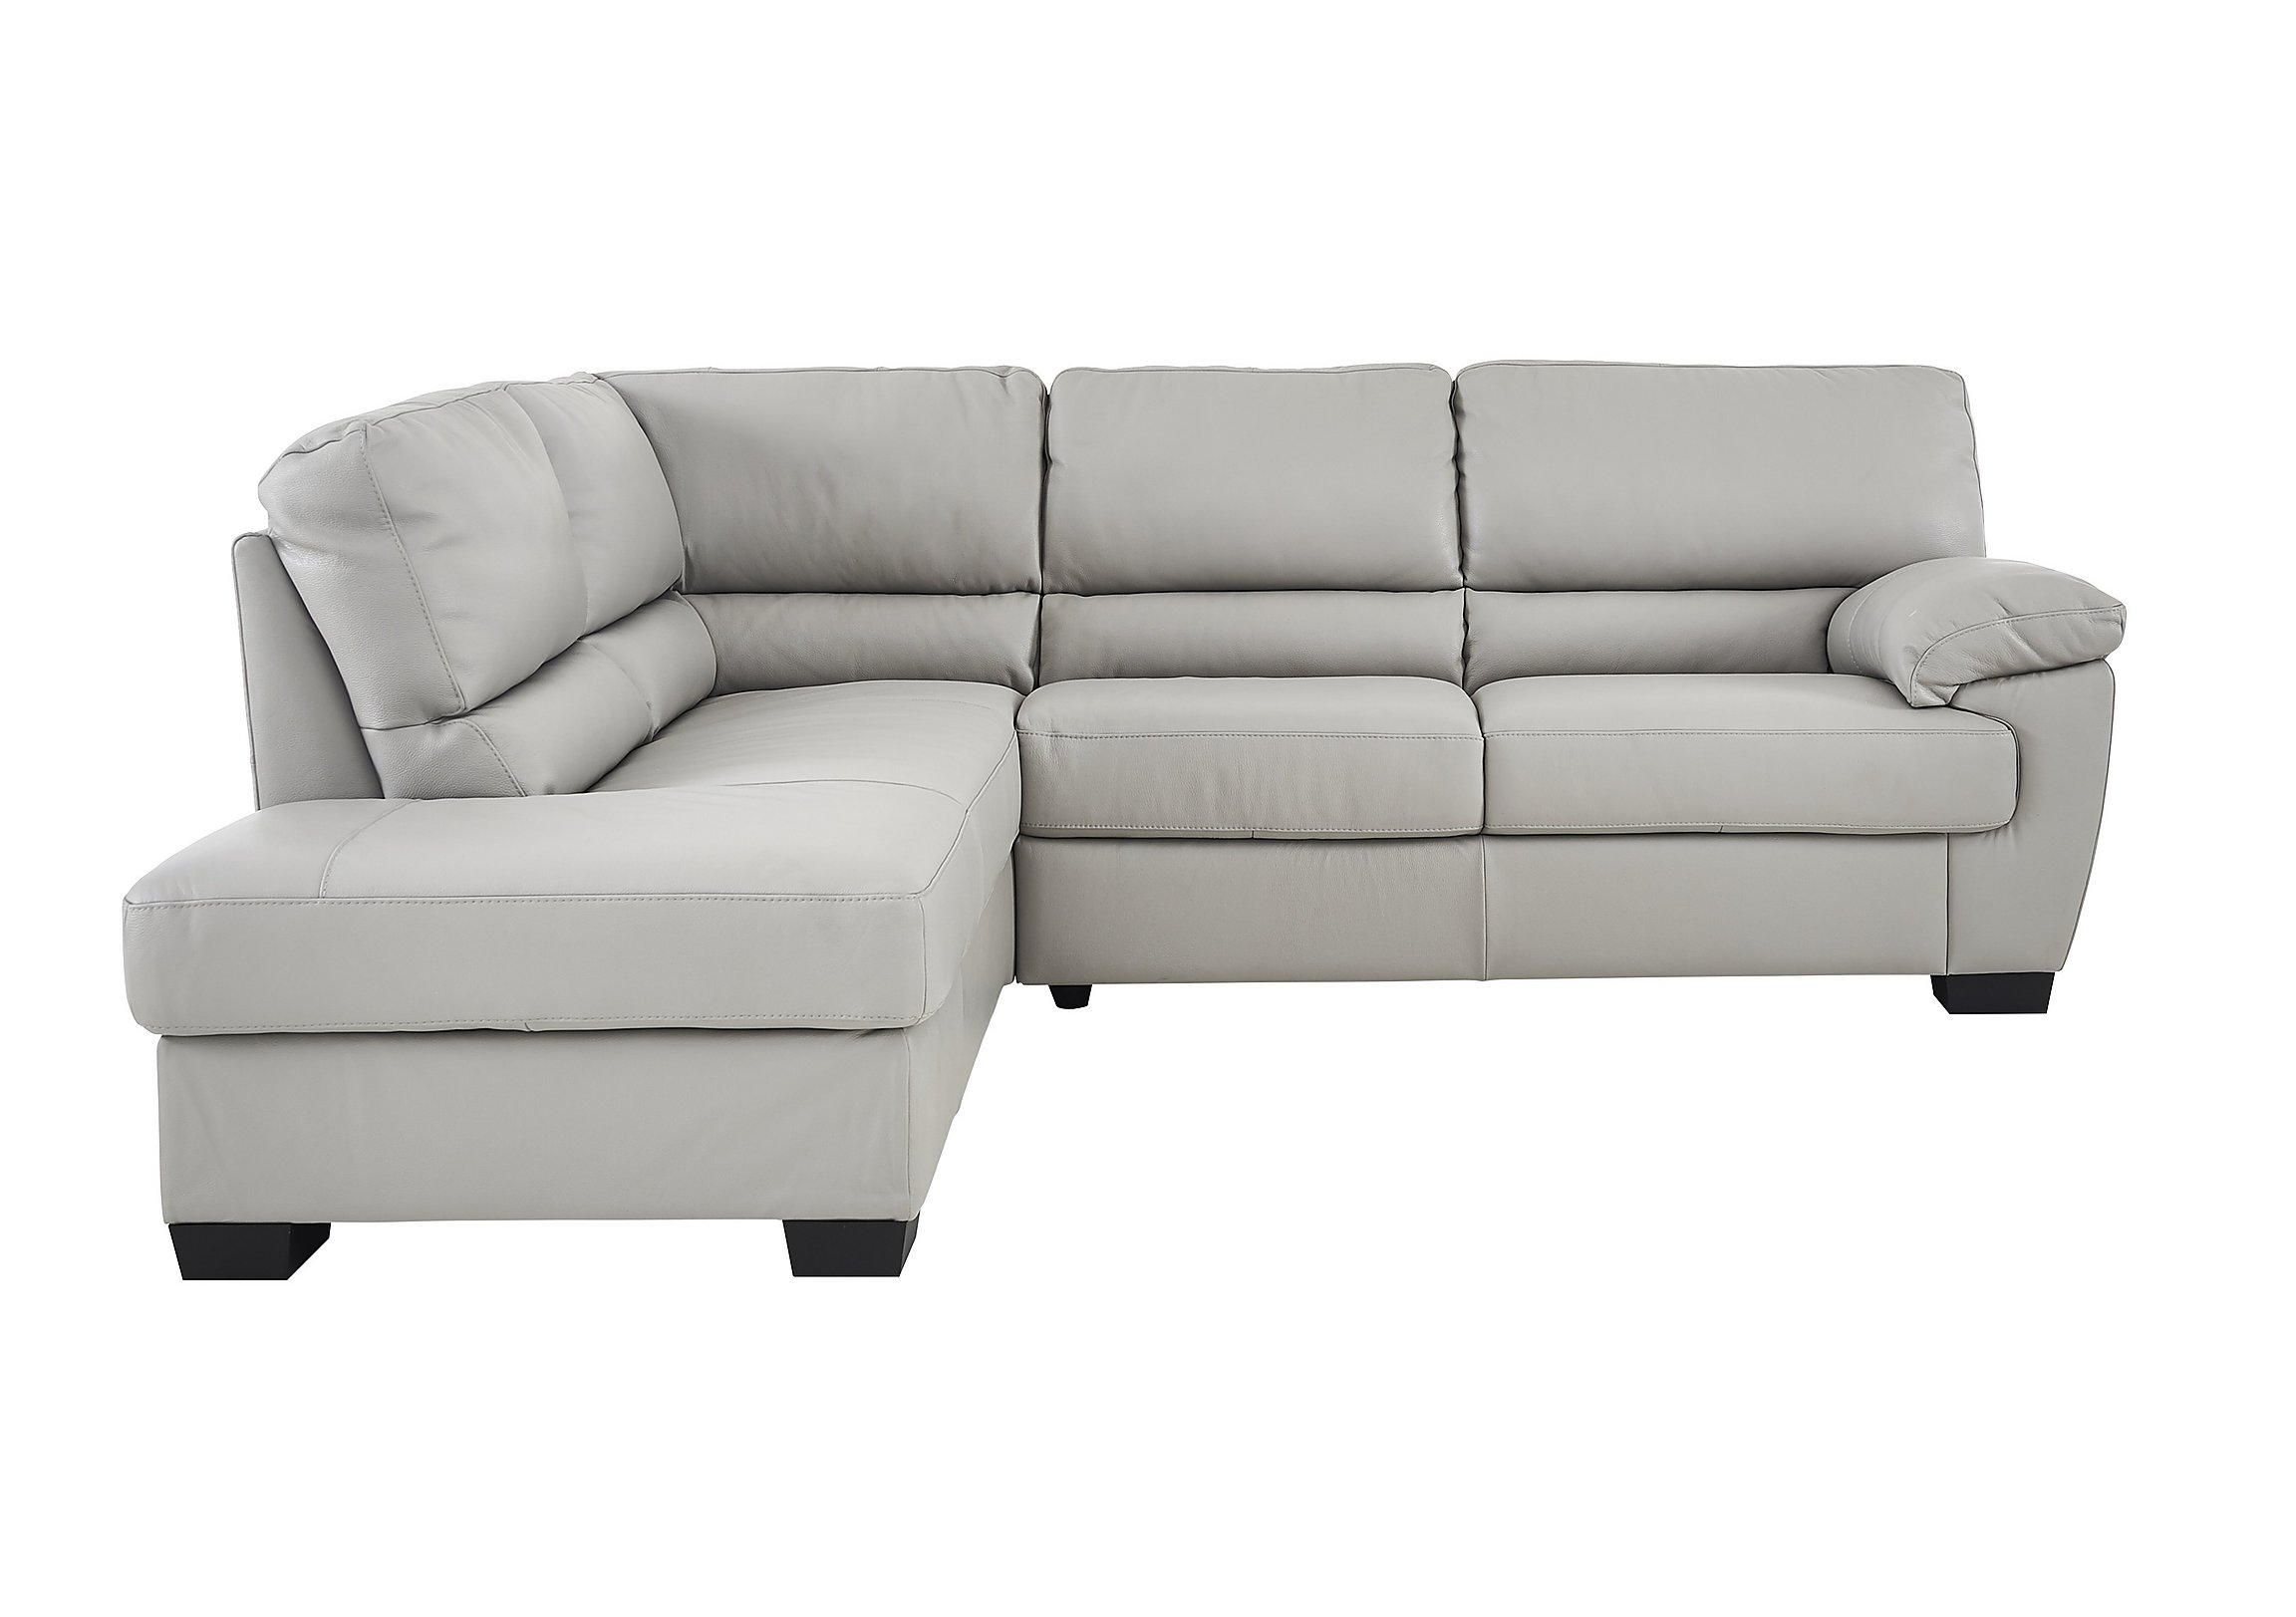 Single Seat Corner Sofa - Modern Sofas